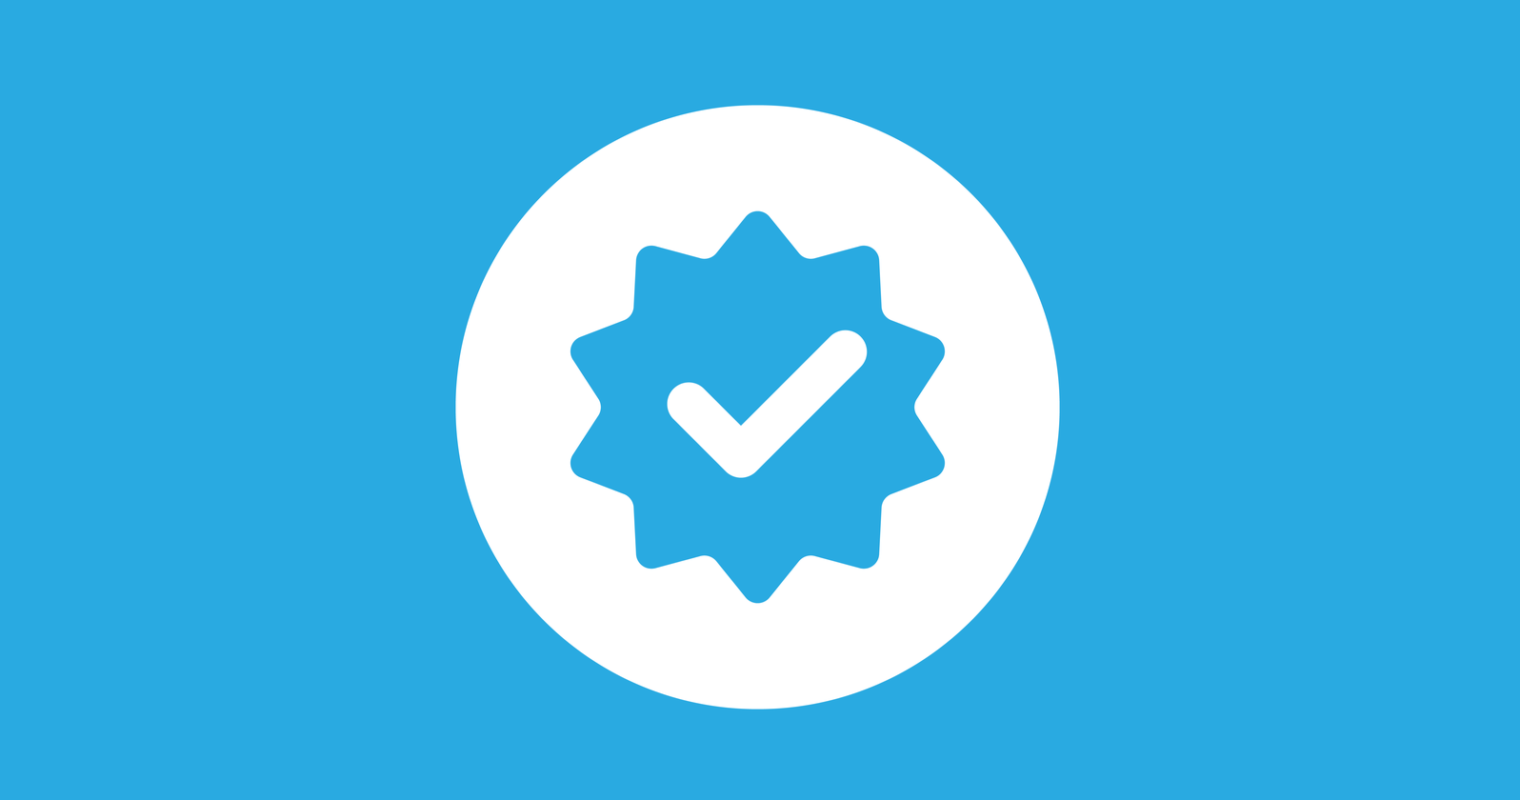 How to Get Verified on Facebook, Instagram, Twitter & More